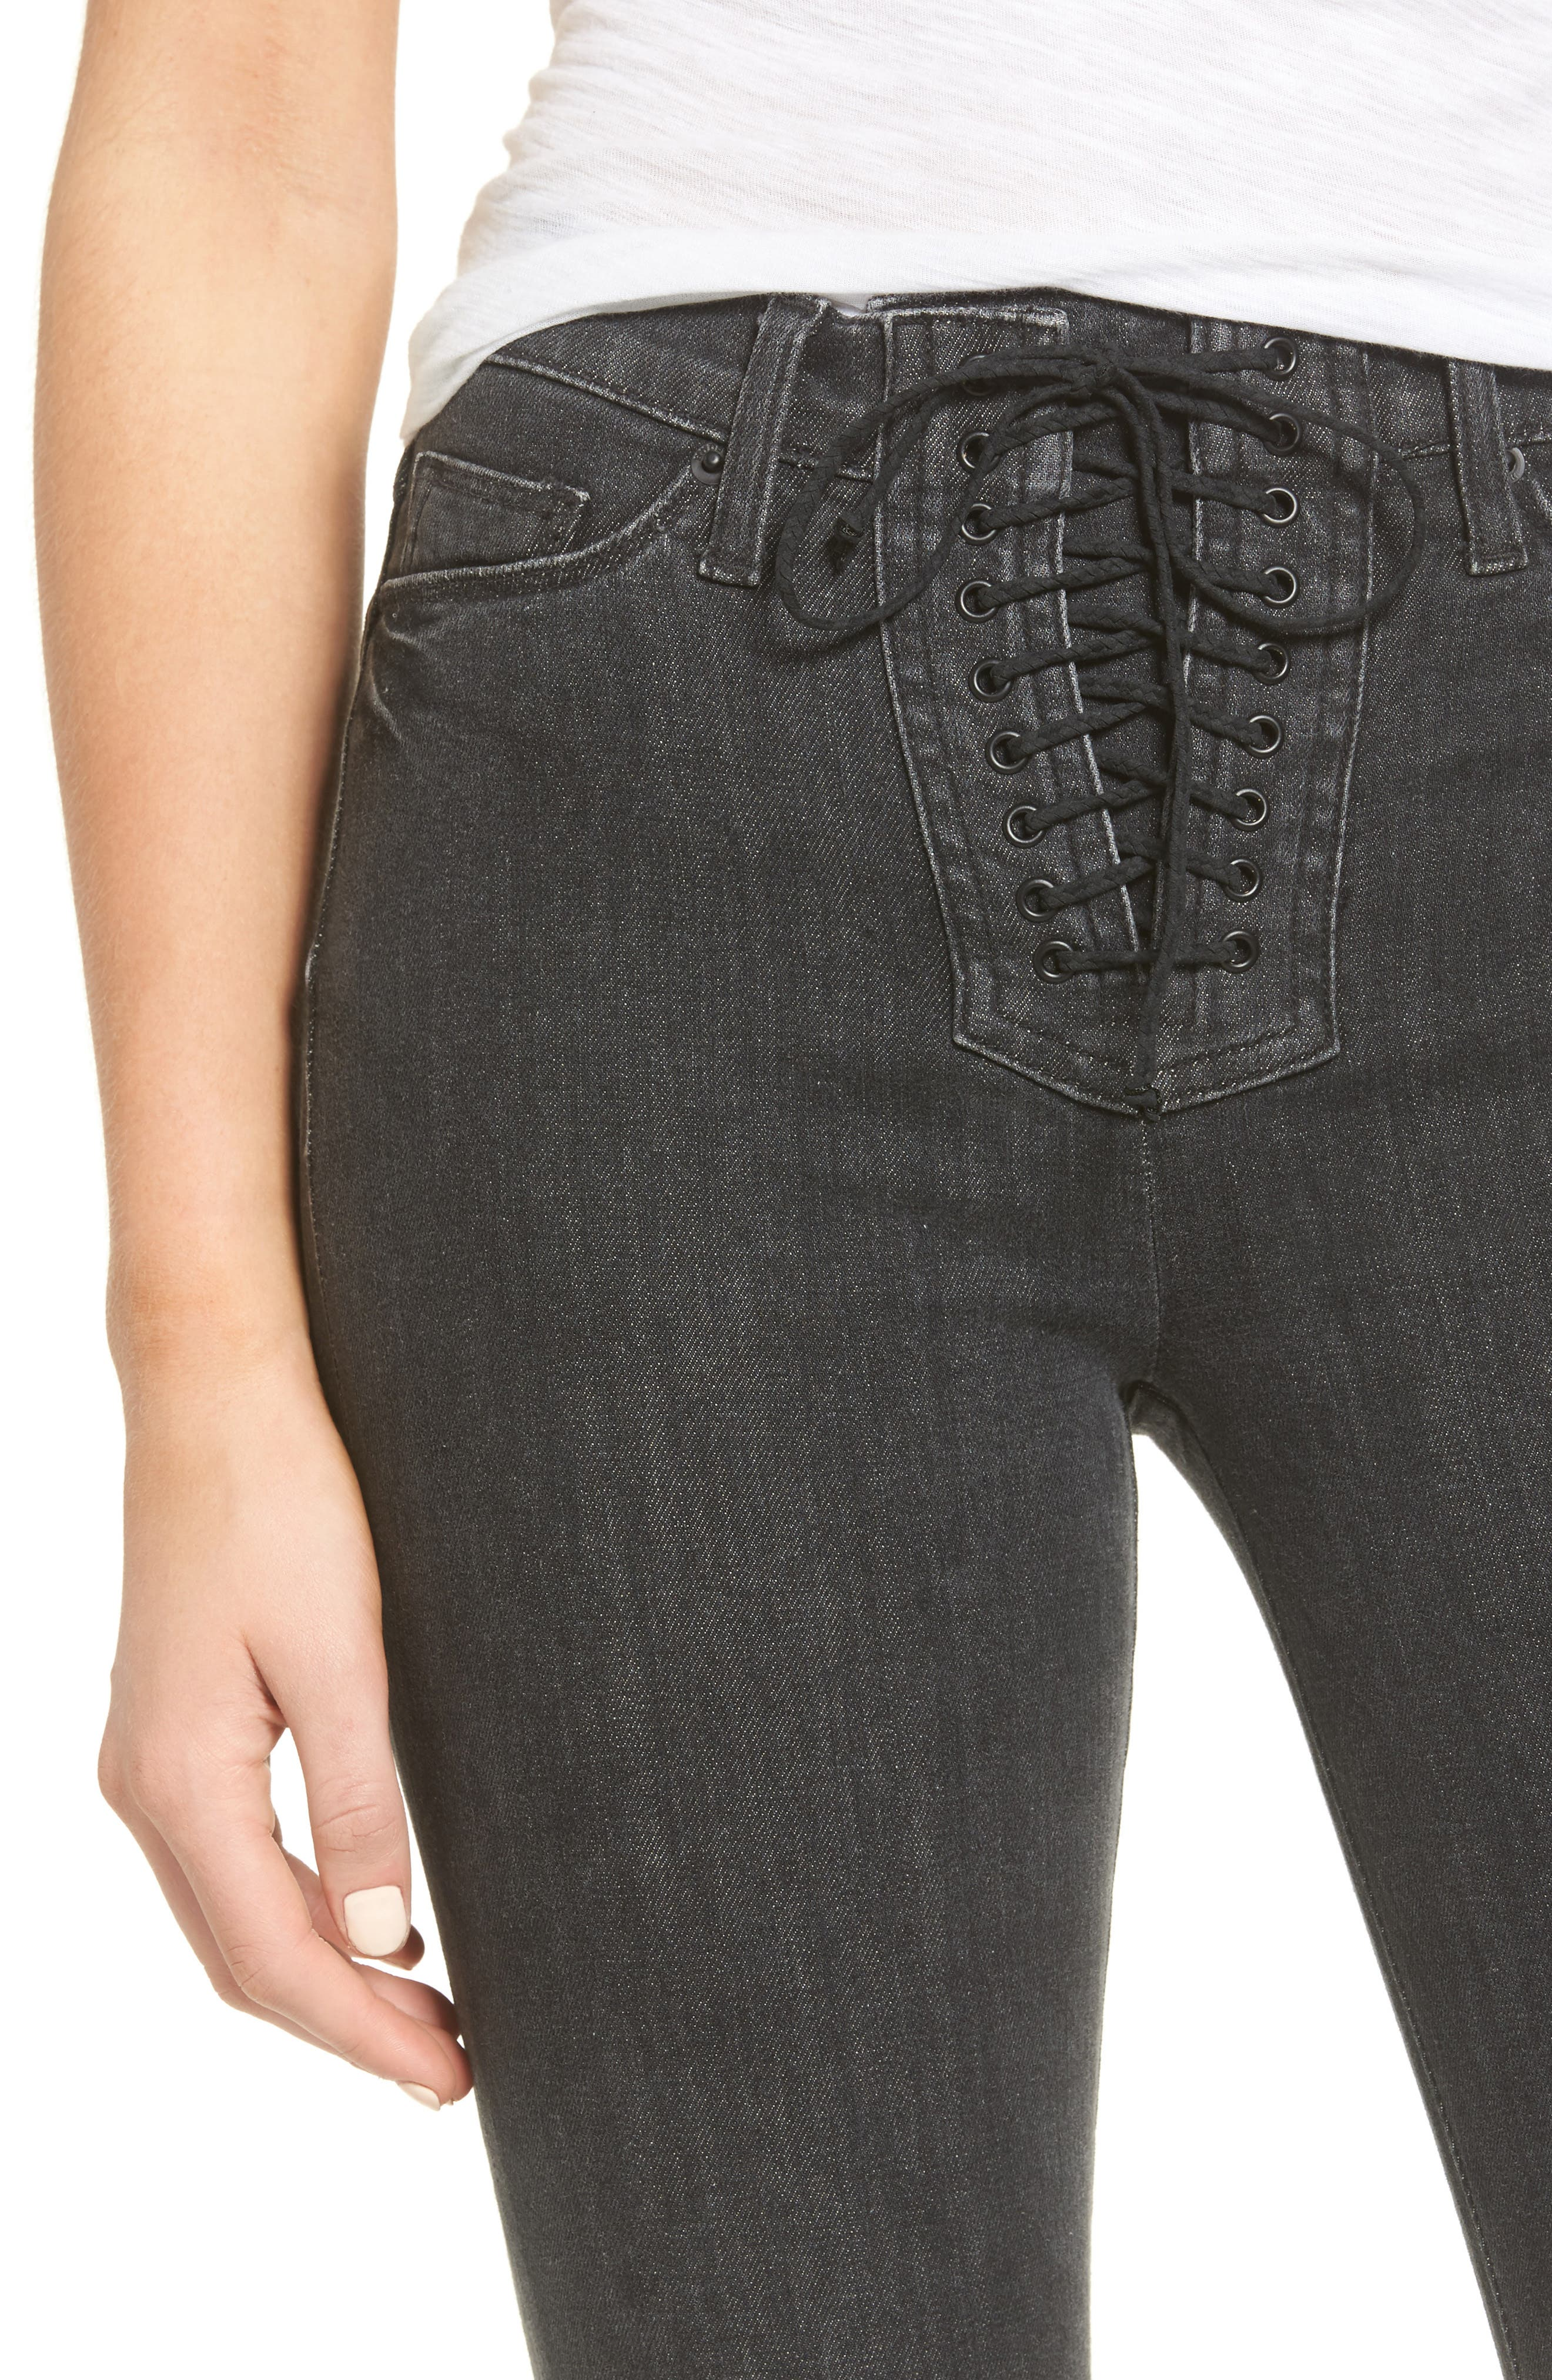 Bullocks High Waist Lace-Up Skinny Jeans,                             Alternate thumbnail 4, color,                             Vacancy